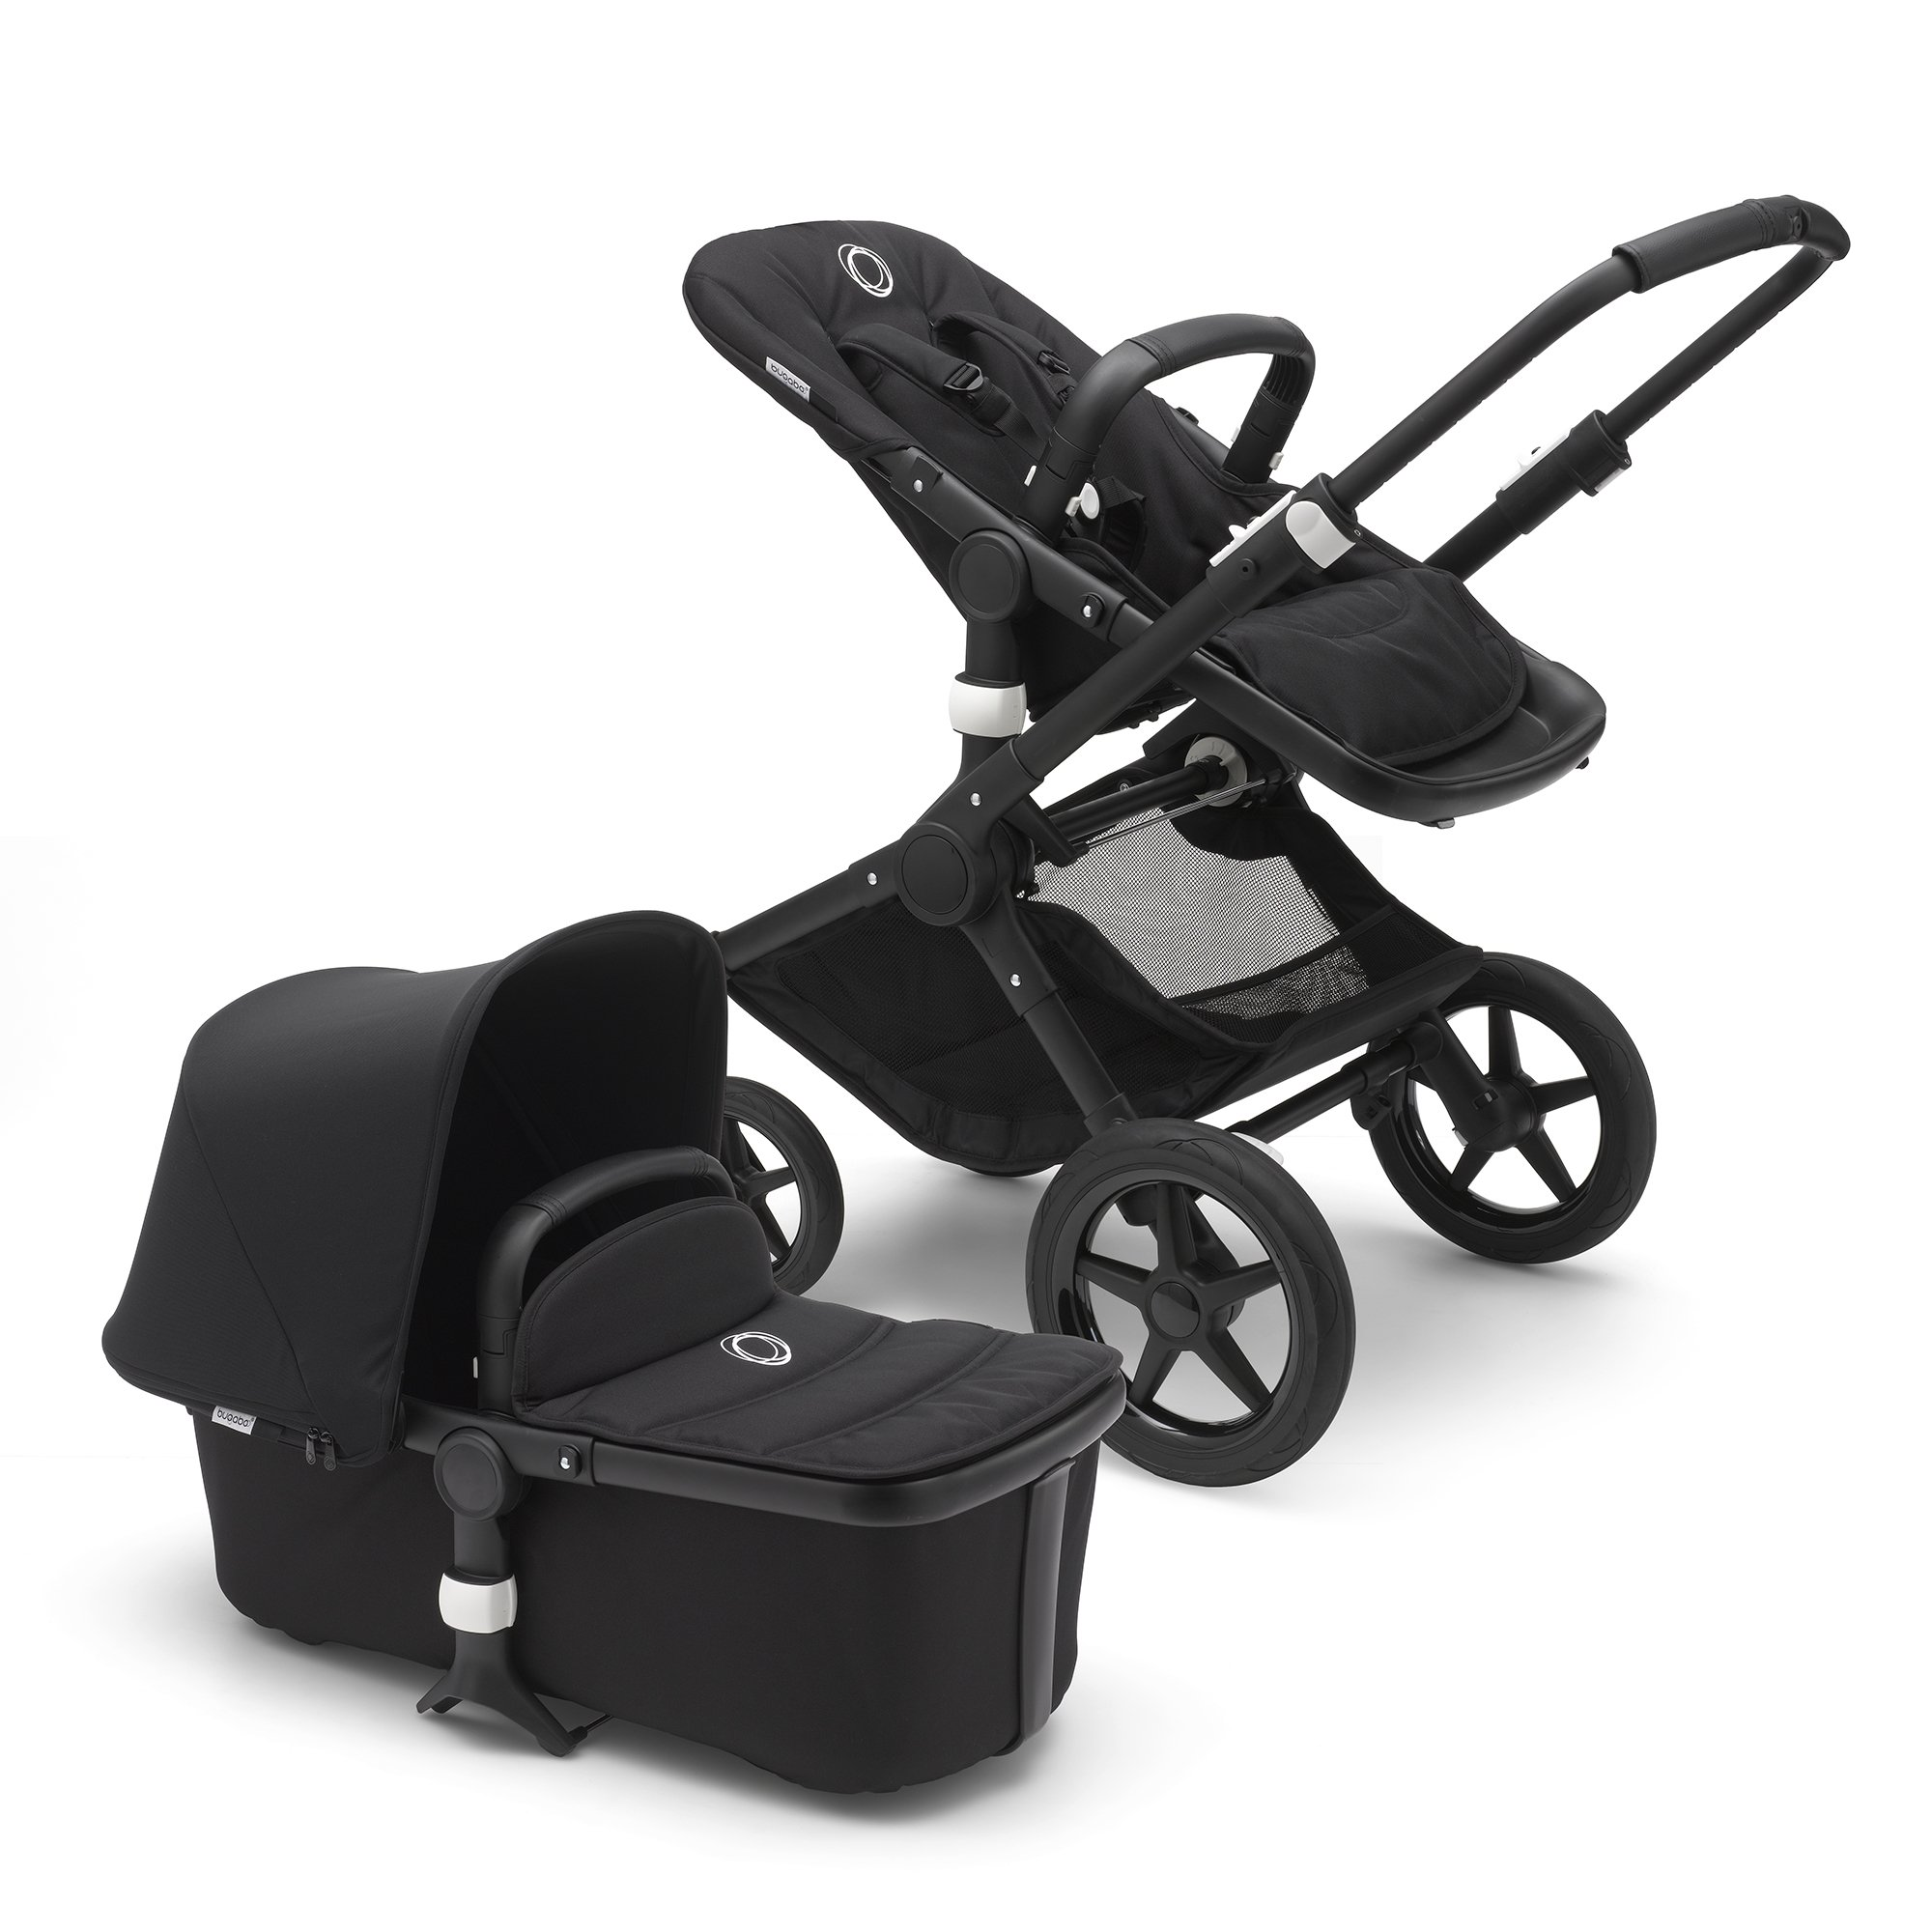 Bugaboo Fox Complete Full-Size Stroller, Black - Fully-Loaded Foldable Stroller with Advanced Suspension and All-Terrain Wheels by Bugaboo